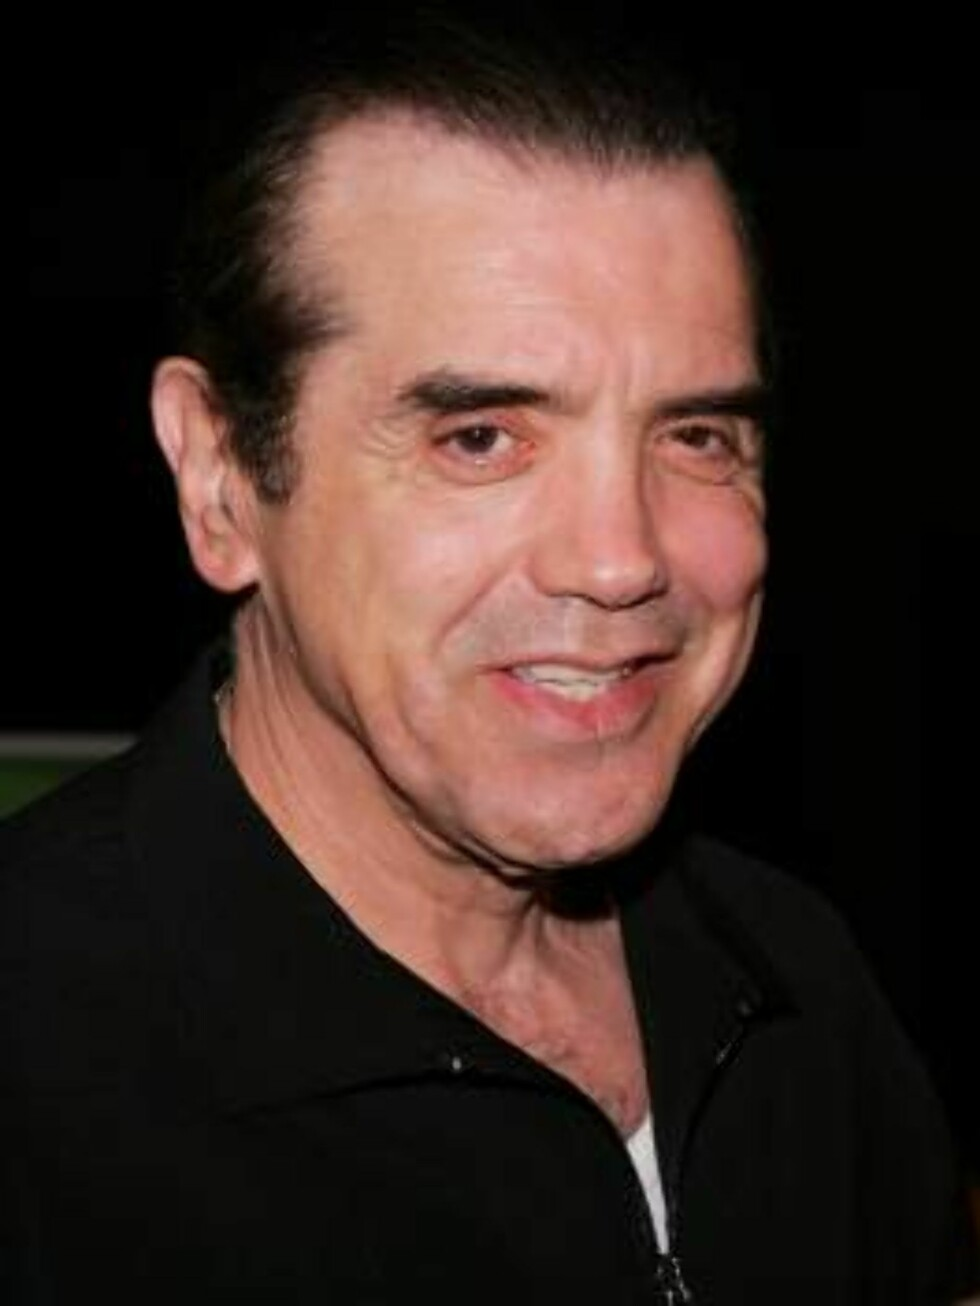 NEW YORK - MAY 19:  Actor Chazz Palminteri attends the The Rainforest Foundation Benefit Dinner & Gala at The Pierre Hotel on May 19, 2006 in  New York City.  (Photo by Paul Hawthorne/Getty Images) *** Local Caption *** Chazz Palminteri  * SPECIAL INSTRUC Foto: All Over Press